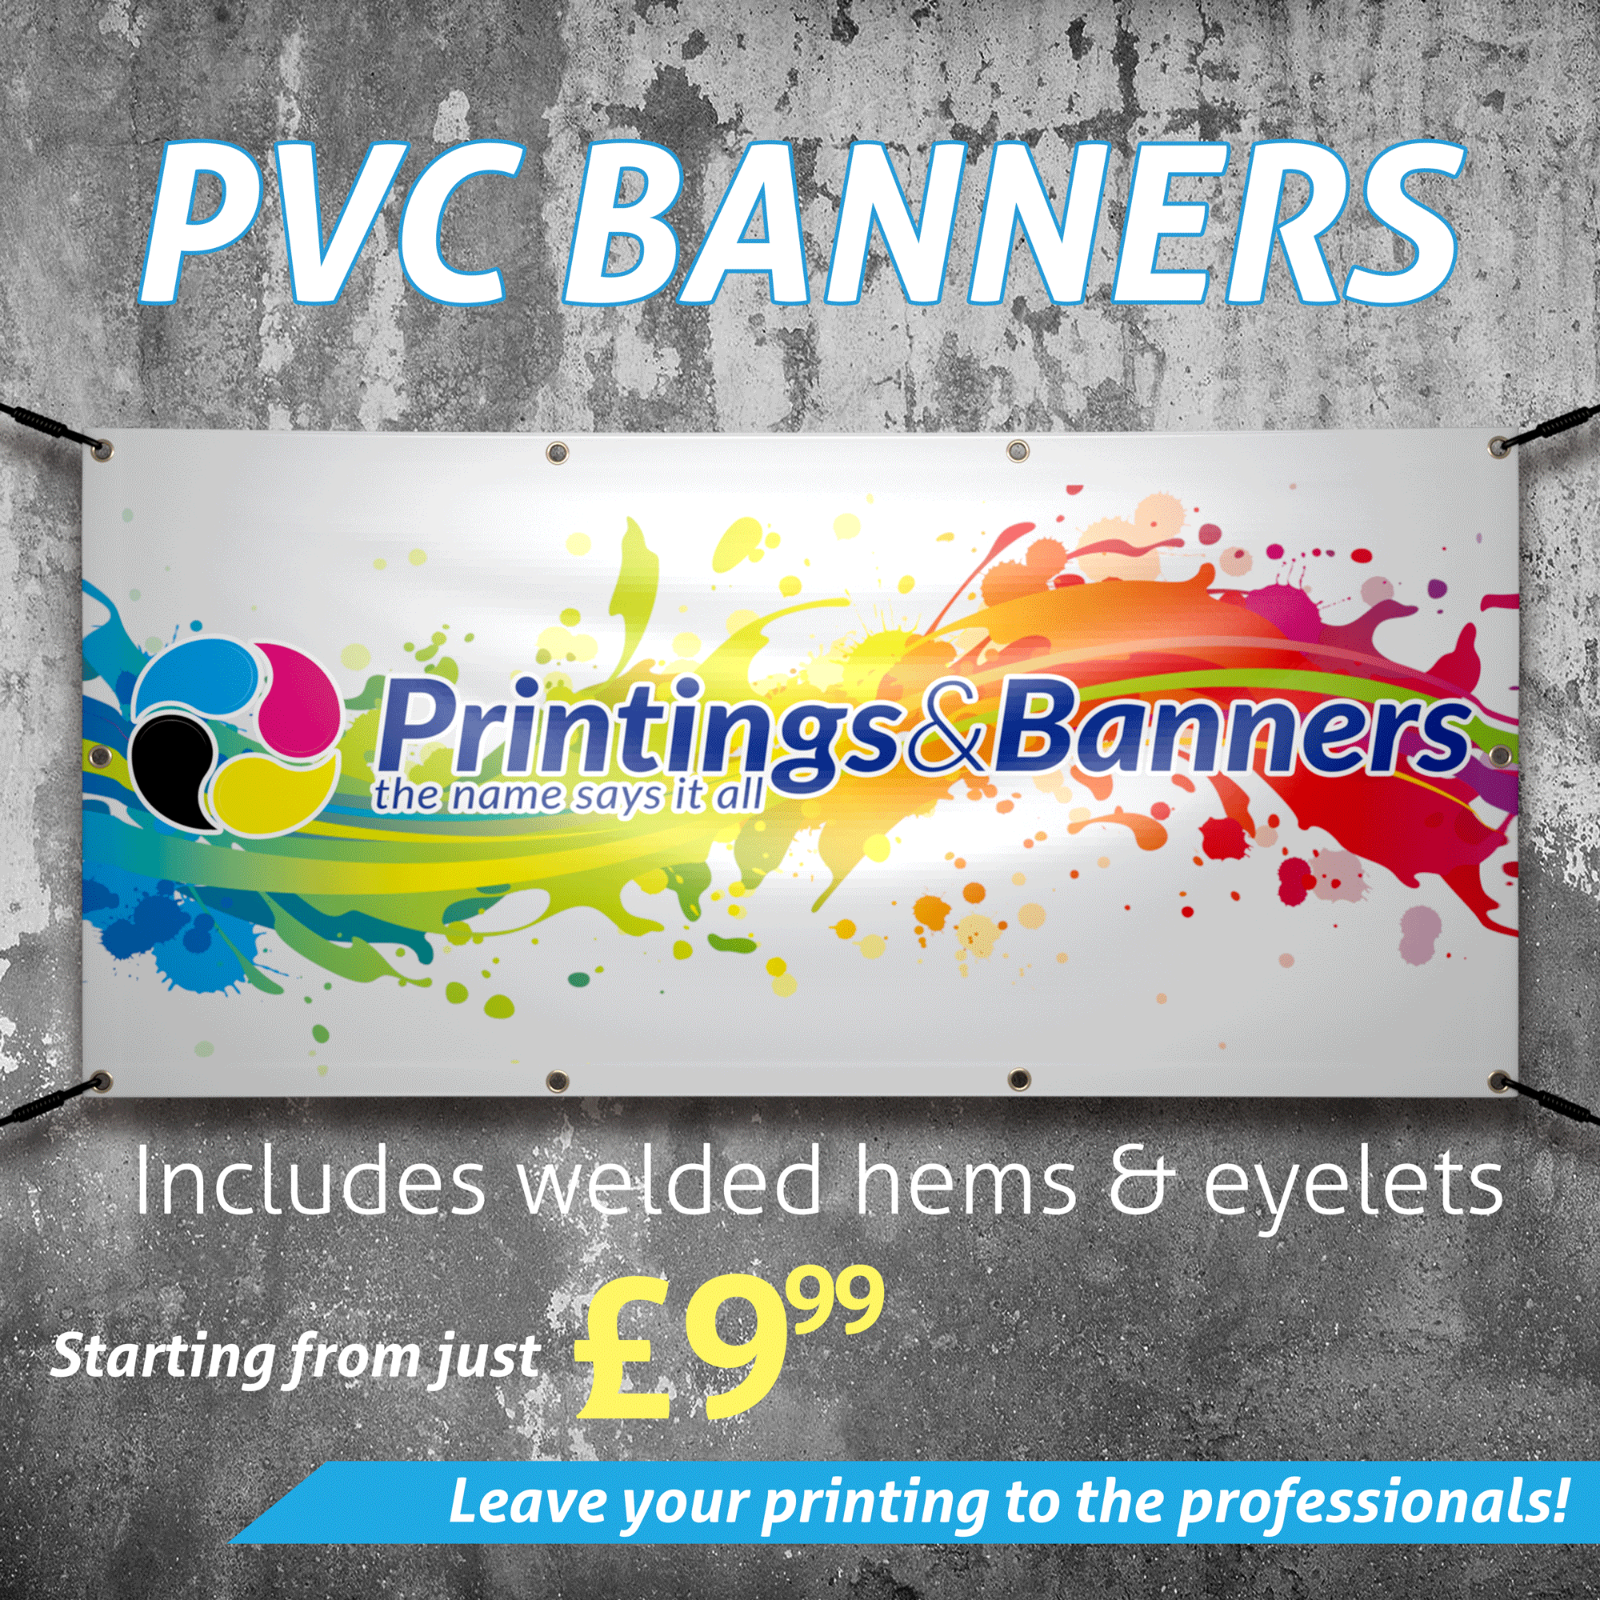 2ft x 2ft PVC Banner Printed Outdoor Vinyl Sign for SHOPS Business Parties 540g